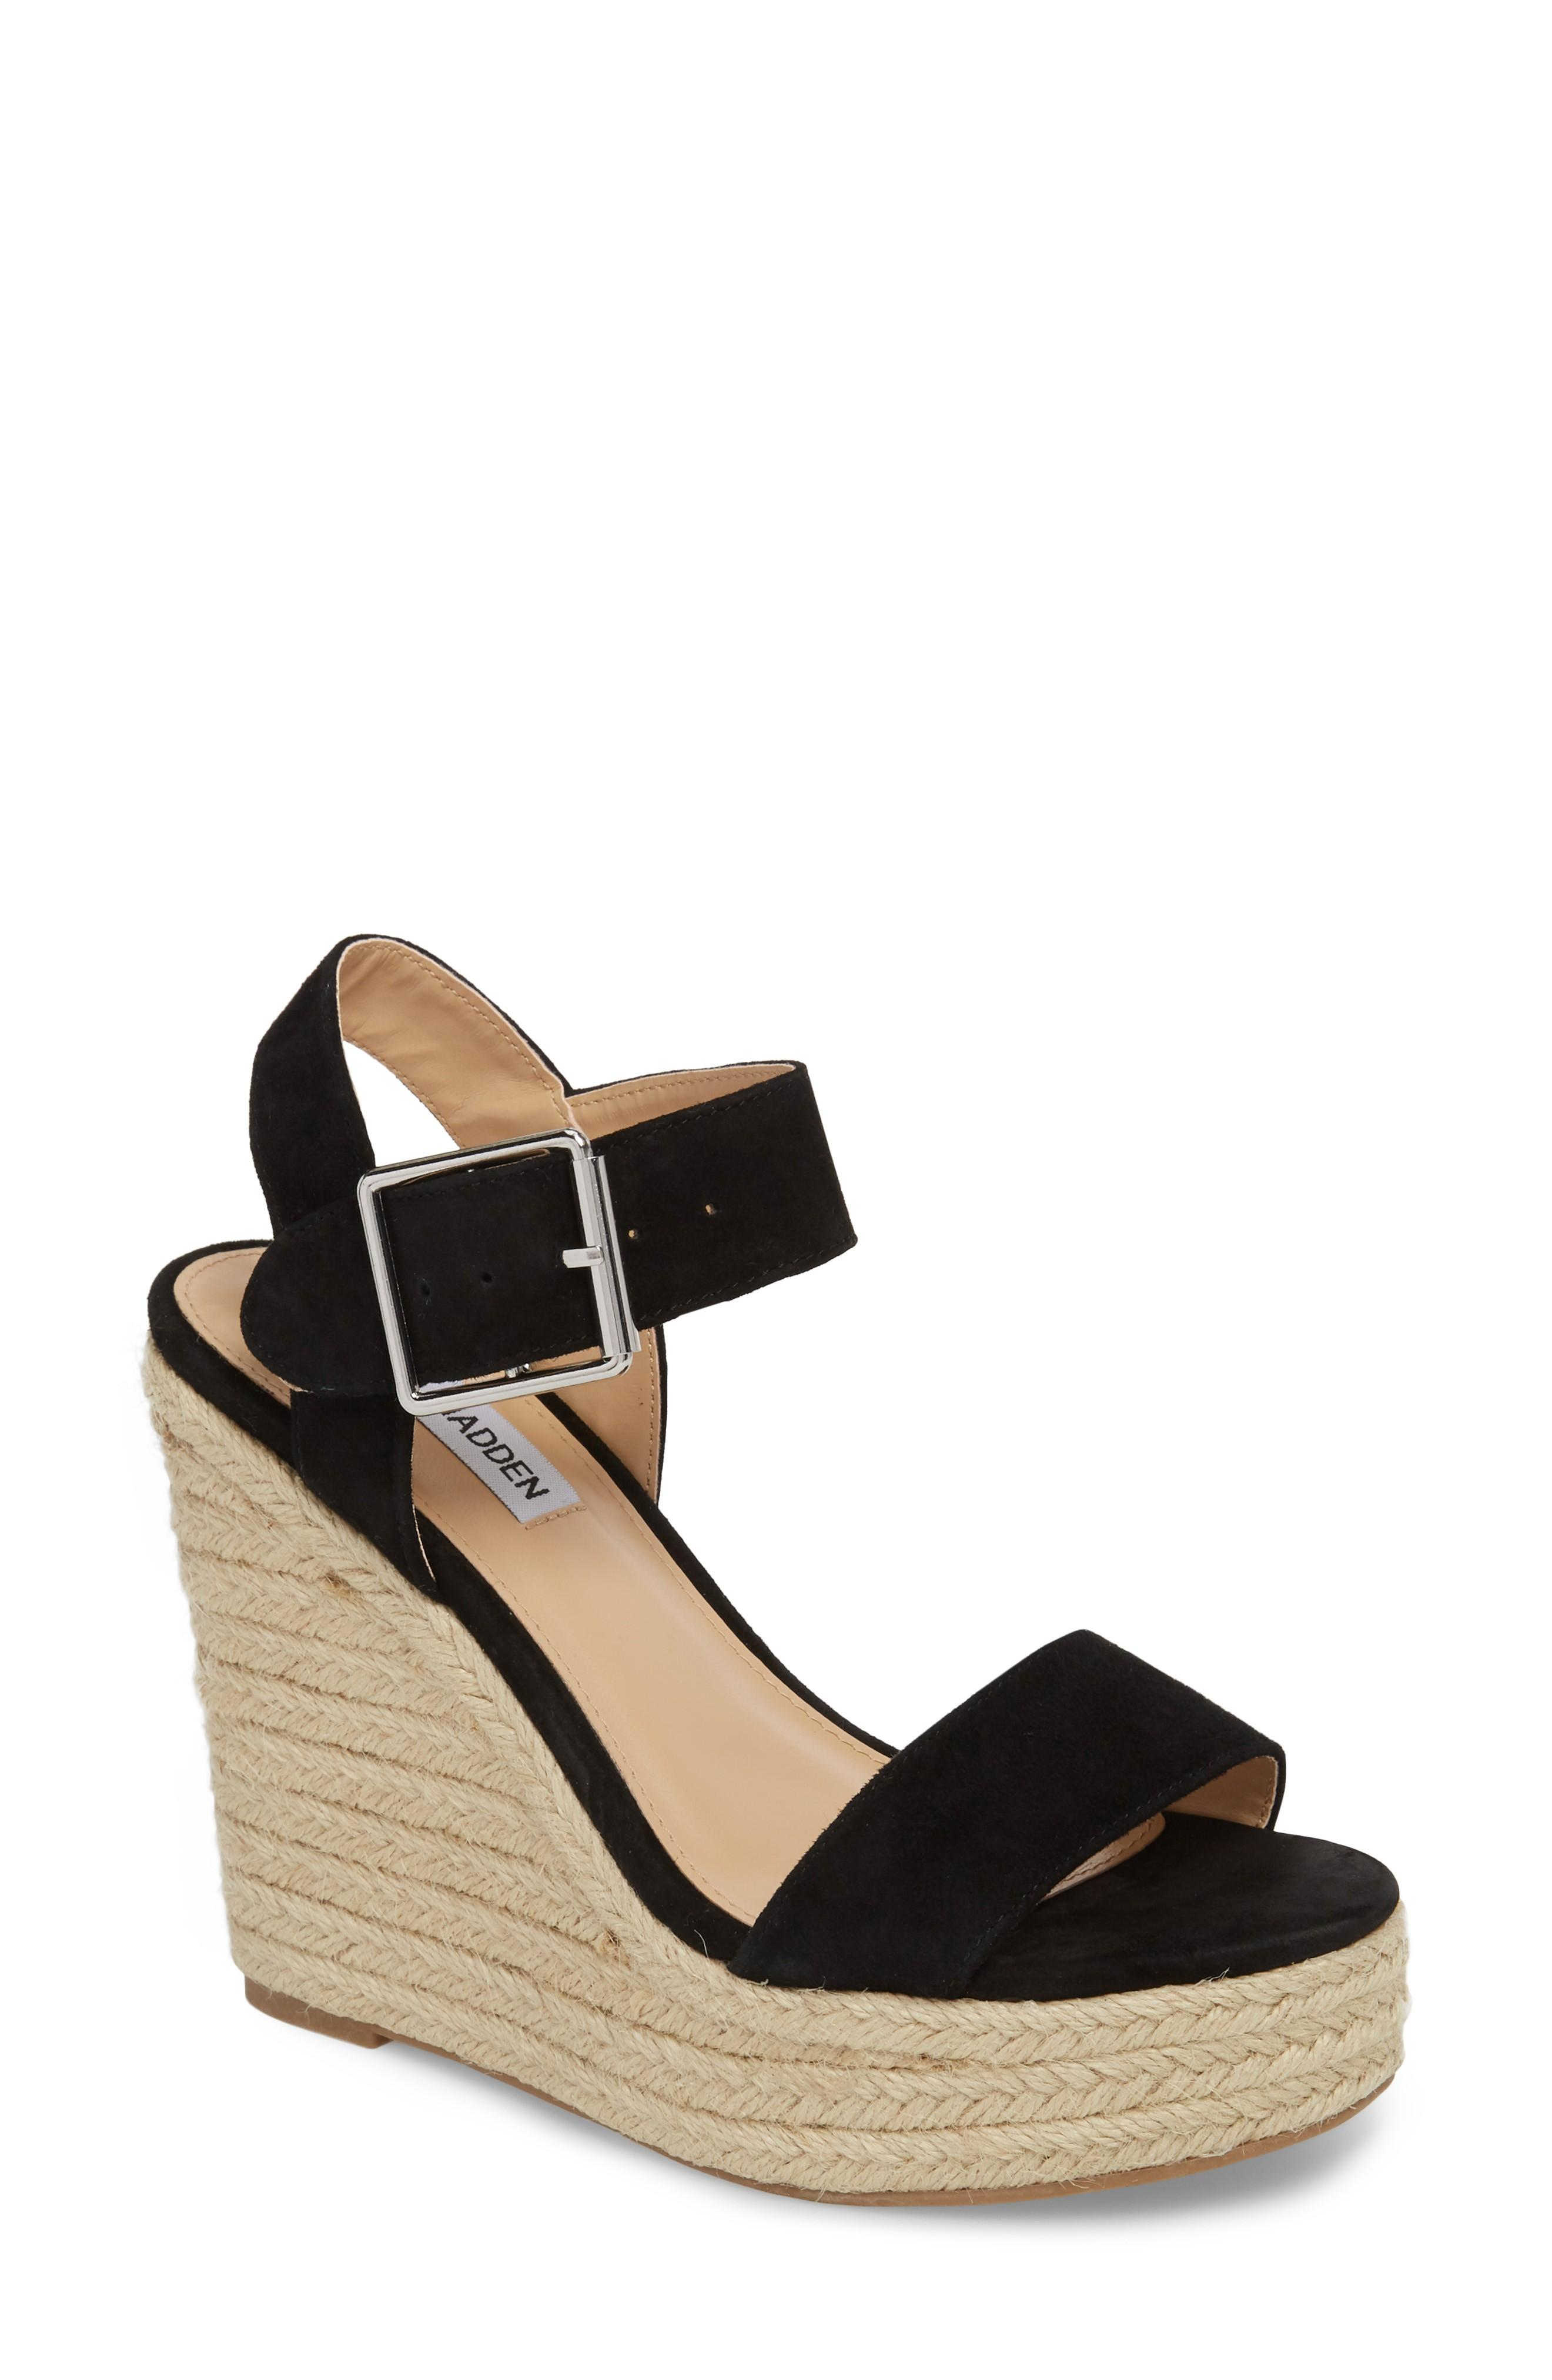 1ebfaceddaf A lofty espadrille platform adds a bit of earthy style to this standout  ankle-strap sandal. Style Name  Steve Madden Santorini Espadrille Wedge  Sandal ...